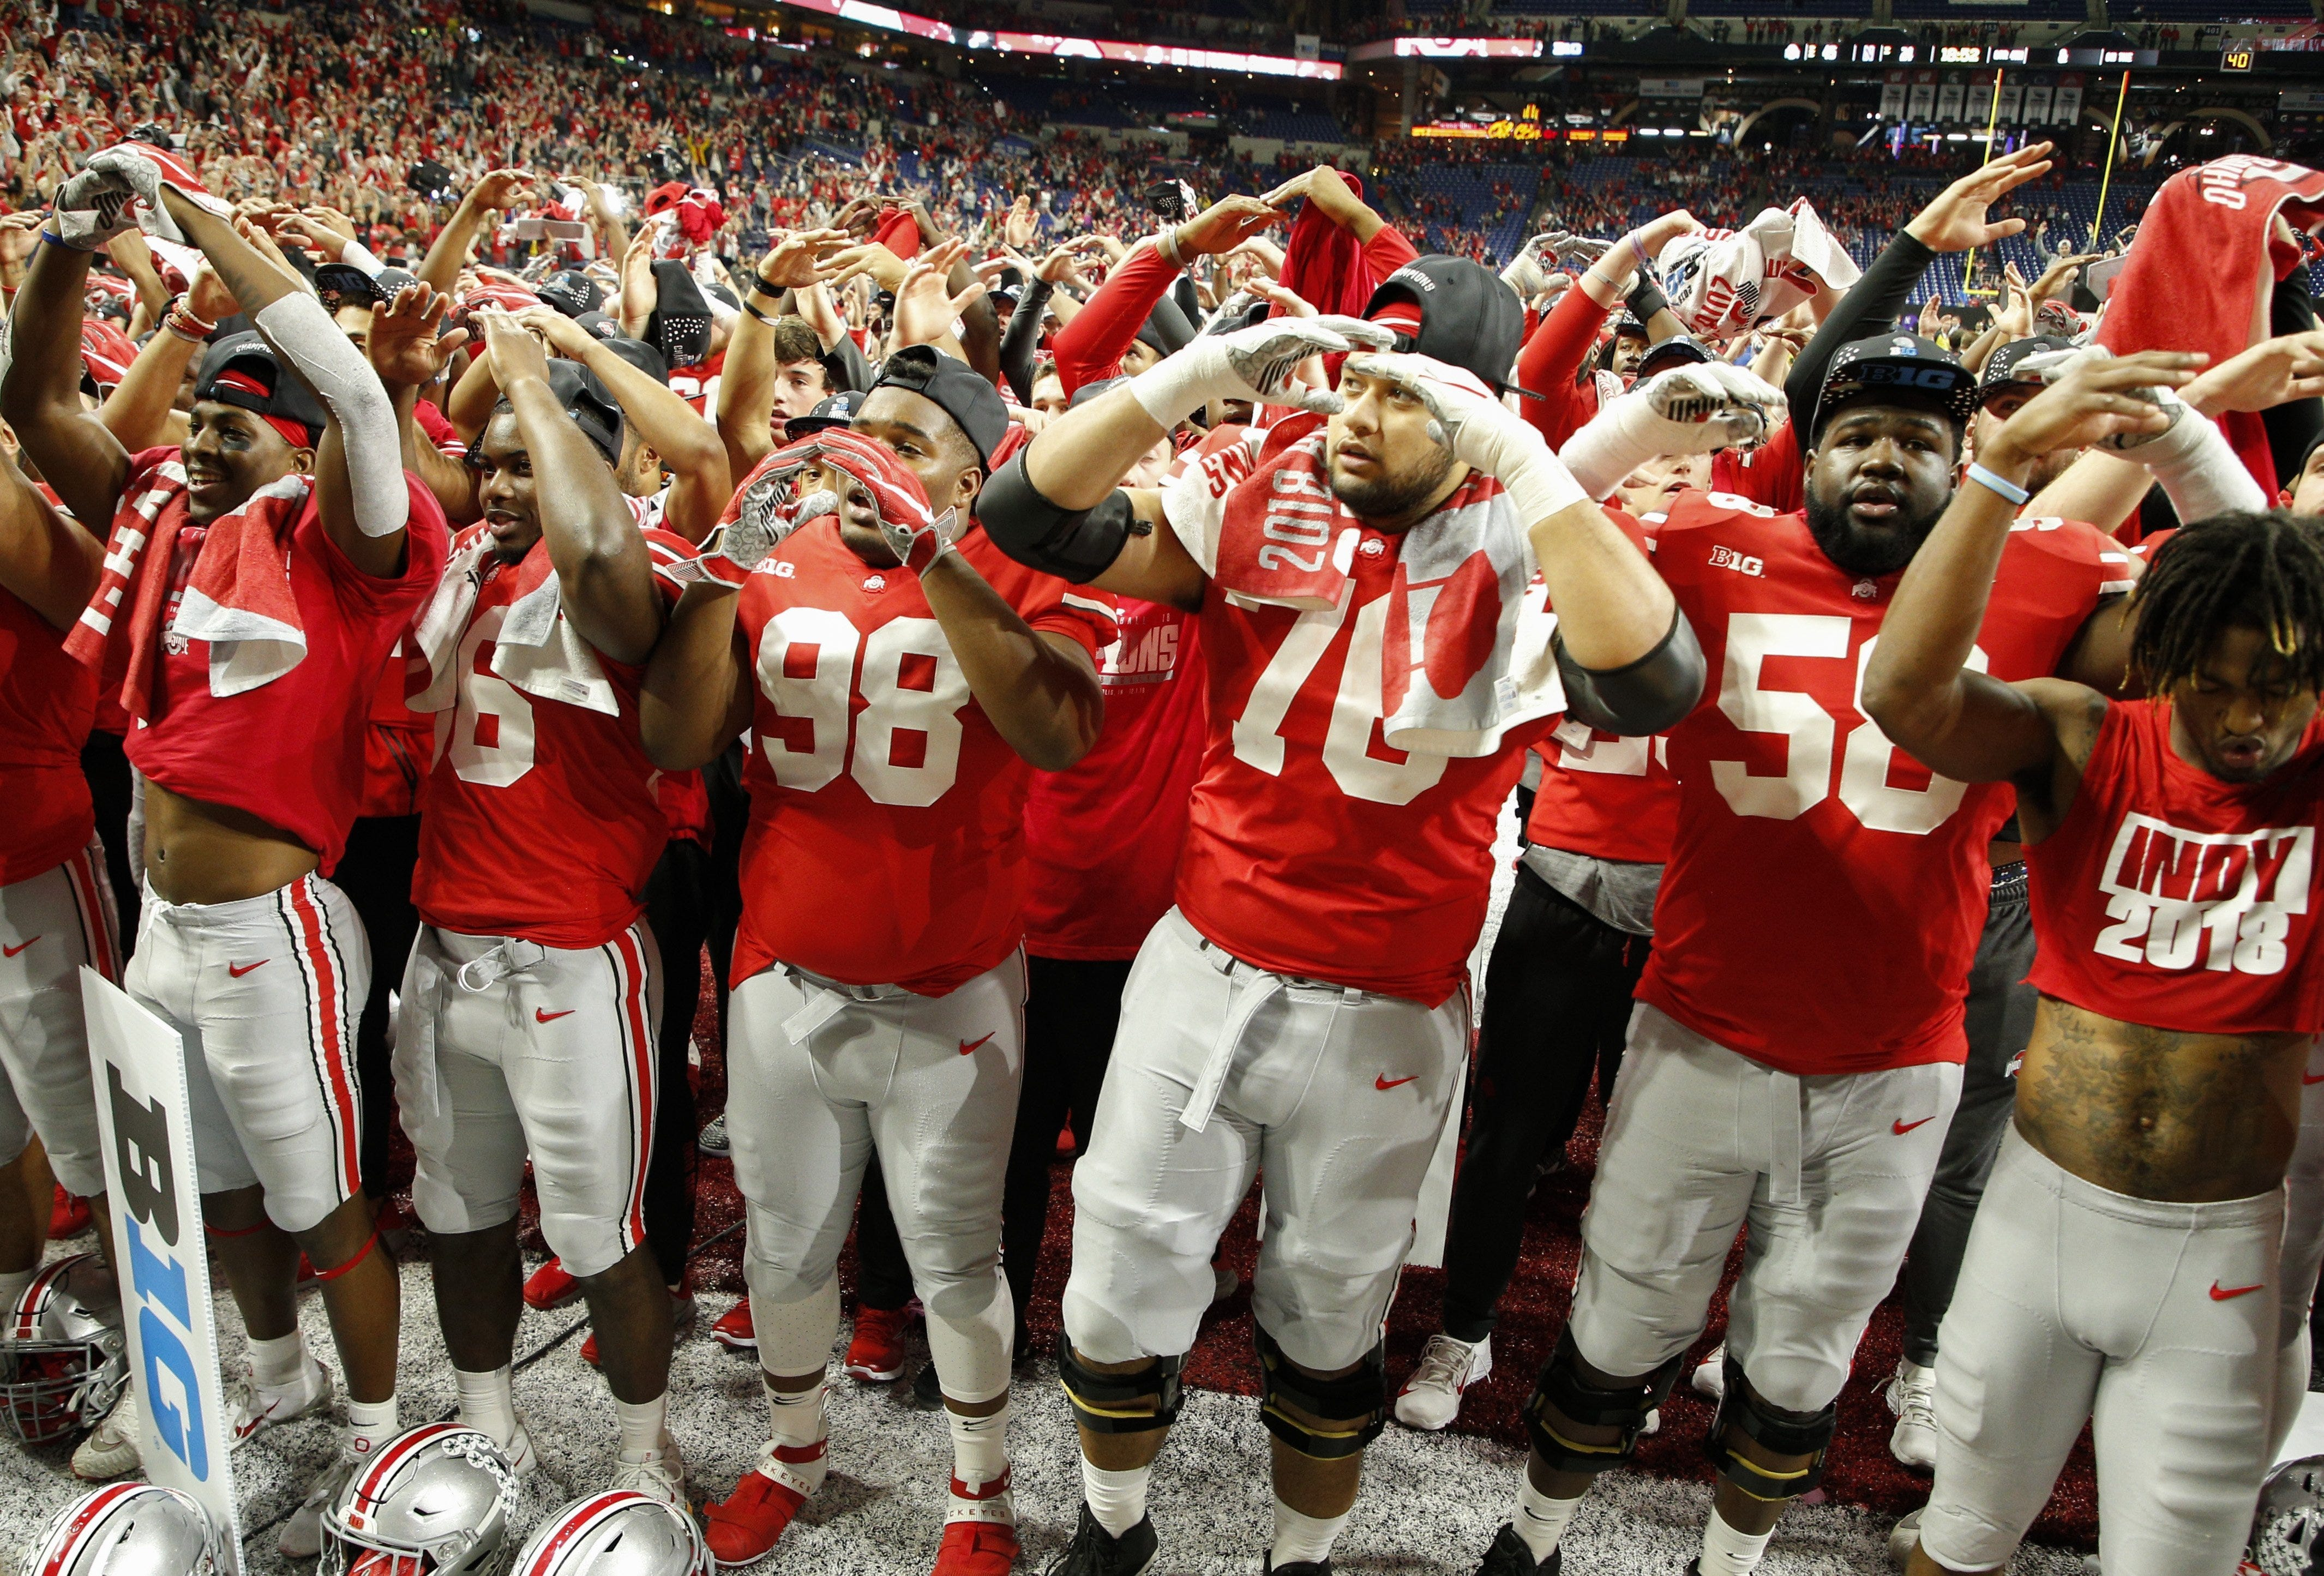 Big Ten amends rule allowing Ohio State to play in conference title game